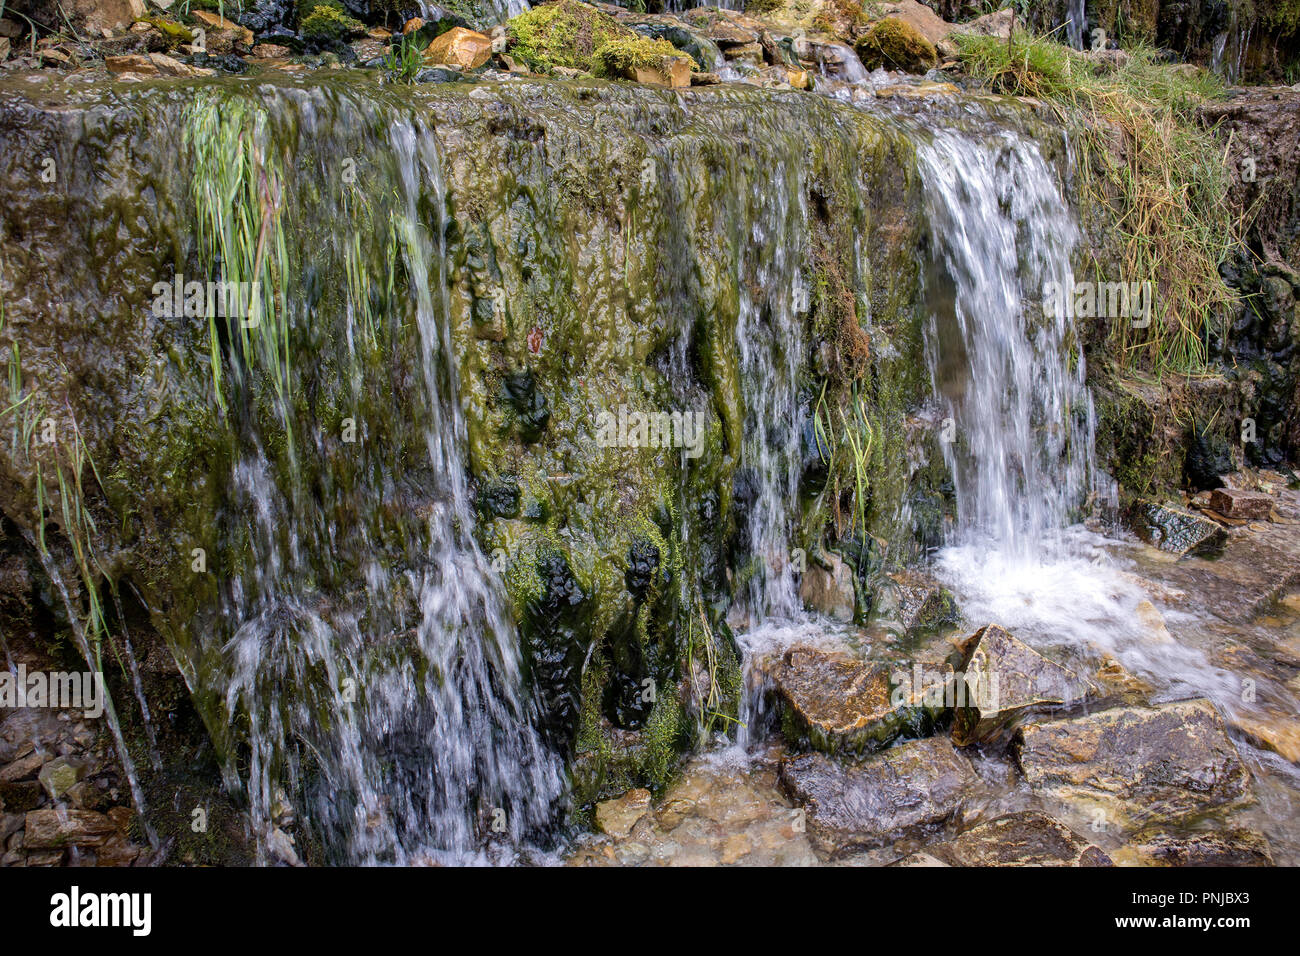 Millennial cold forest creeks, little waterfalls over the rocks with slippery moss Stock Photo